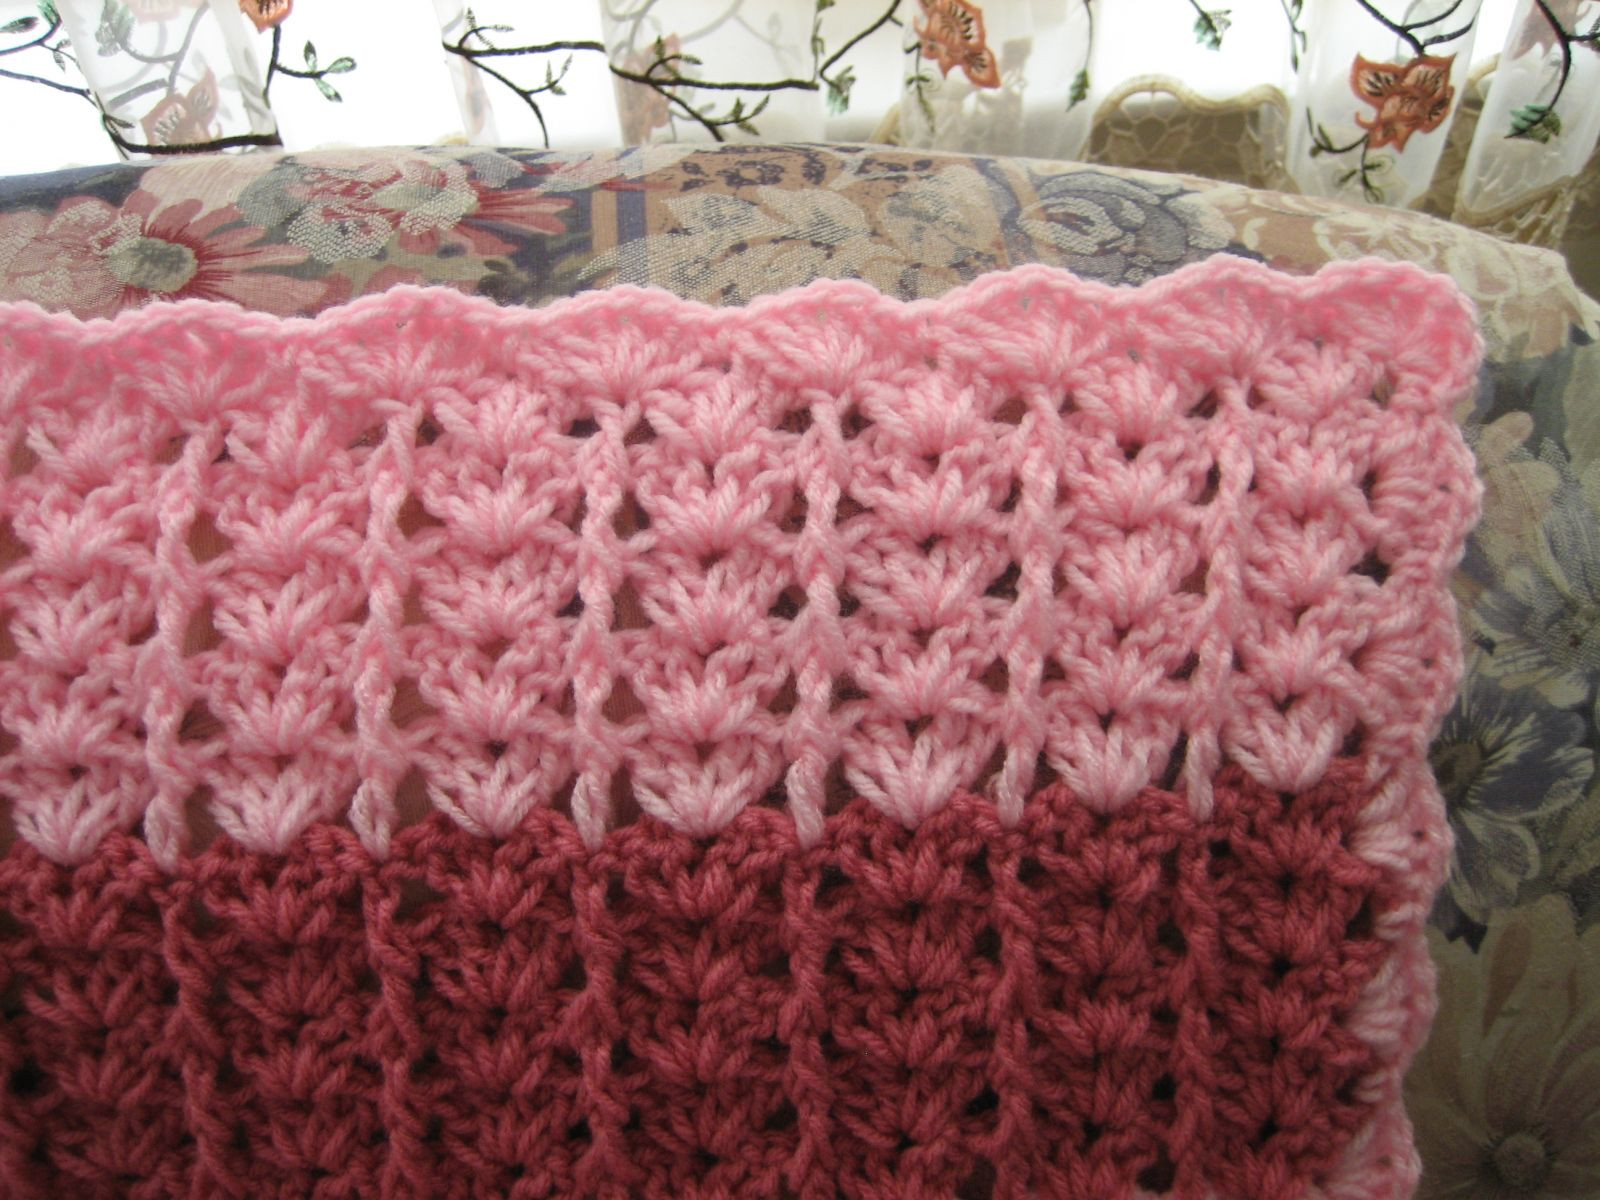 Crochet Lace Pattern Fresh Lacy Shades Of Pink Shells Afghan Of Gorgeous 50 Photos Crochet Lace Pattern